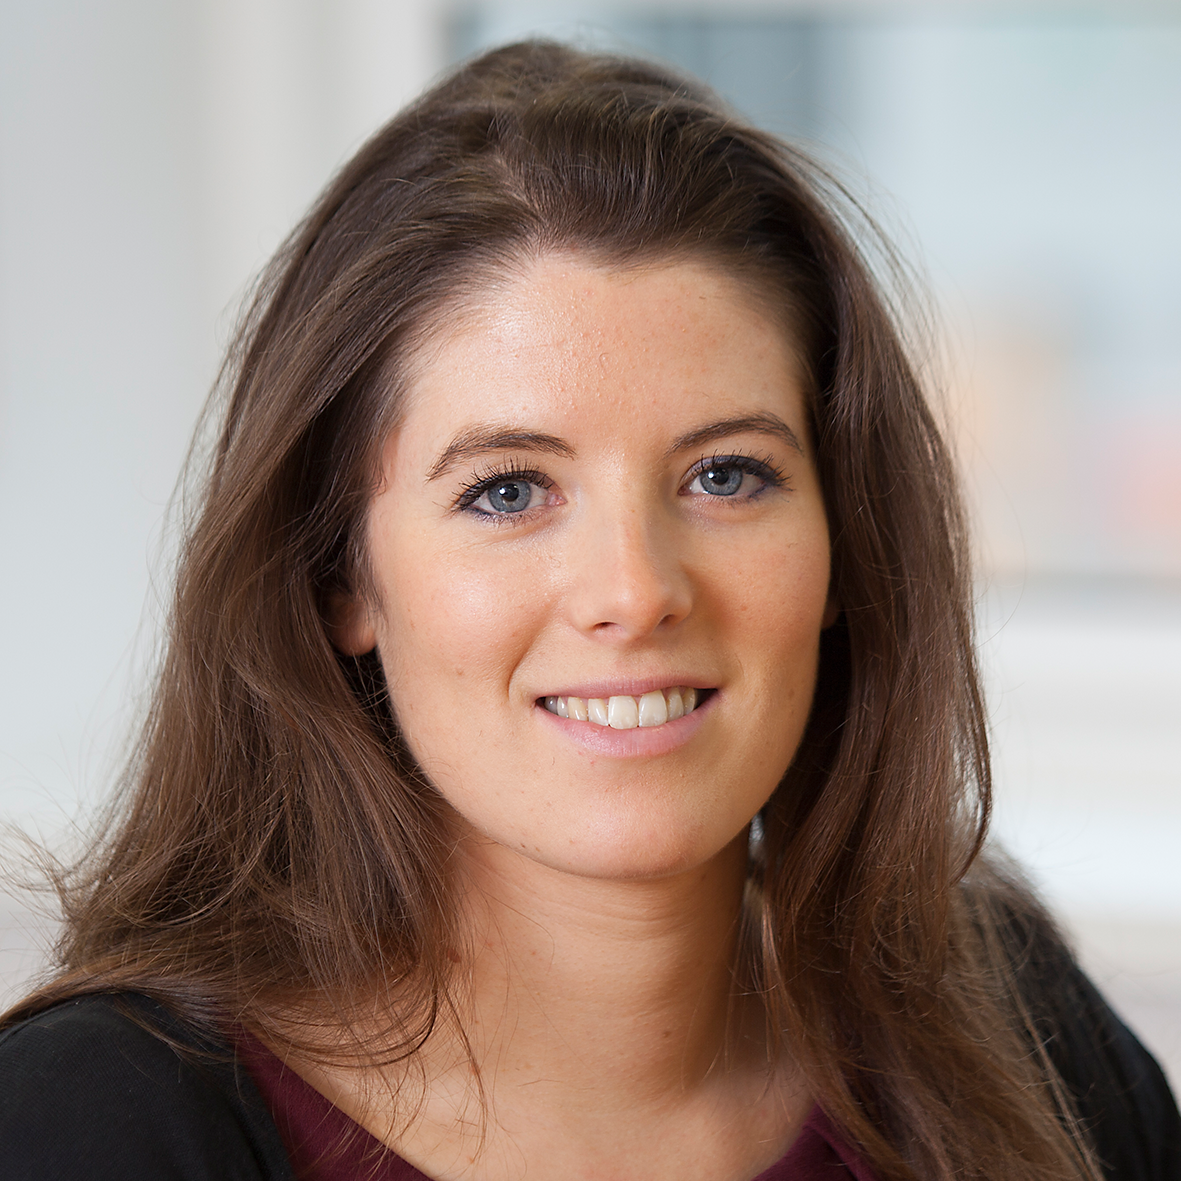 Louisa Cottrell   Co-Head of International Messaging & Events, Brown Advisory   Louisa is co-head of international messaging & events. She is responsible for the development and sharing of the firm's thought leadership, managing the firm's brand and orchestrating events for the London office. Louisa, with Polly Corry, assumed the co-head role in July 2017. Prior to working with the messaging team she was executive assistant to Logie Fitzwilliams, Head of International Business for Brown Advisory. Louisa joined Brown Advisory in January 2011.